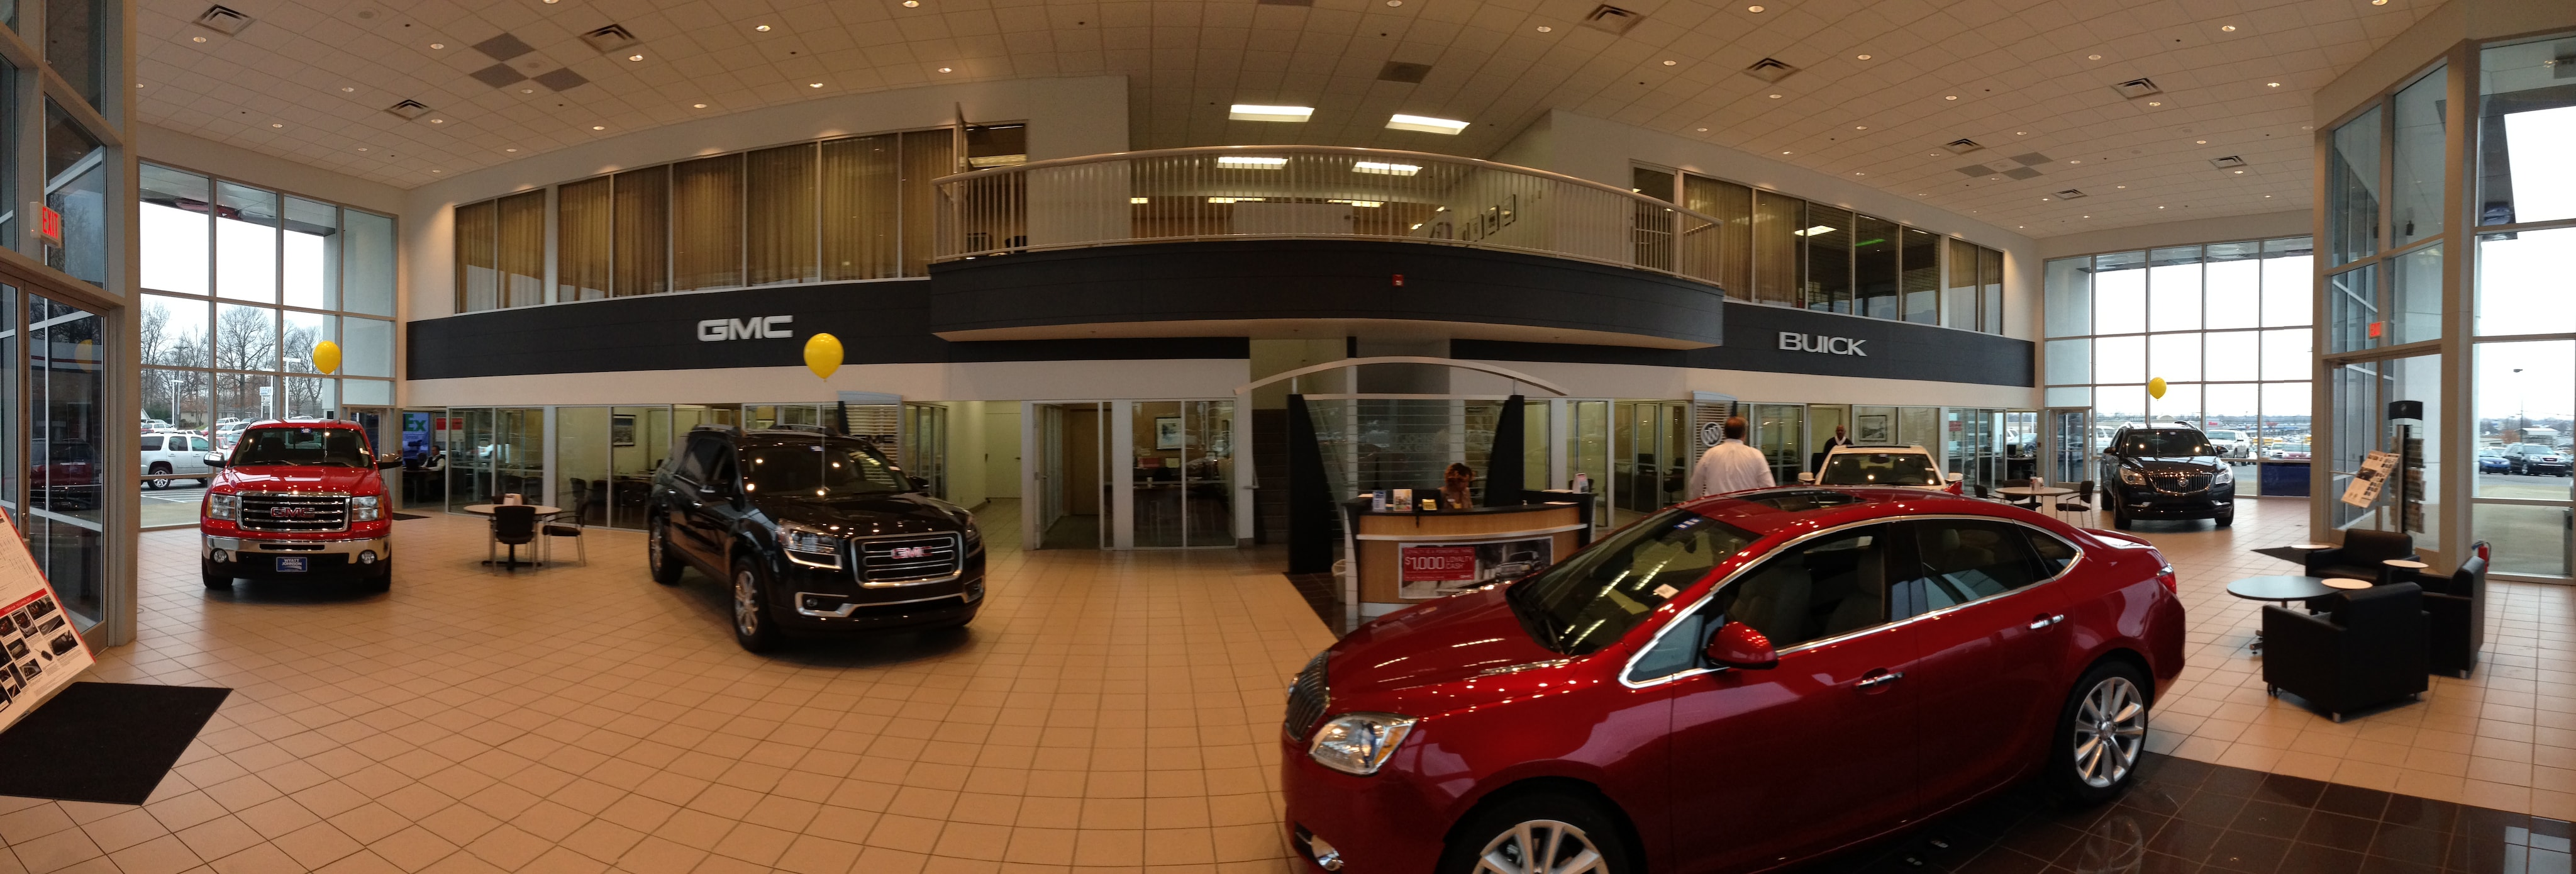 Car Dealerships In Clarksville Tn